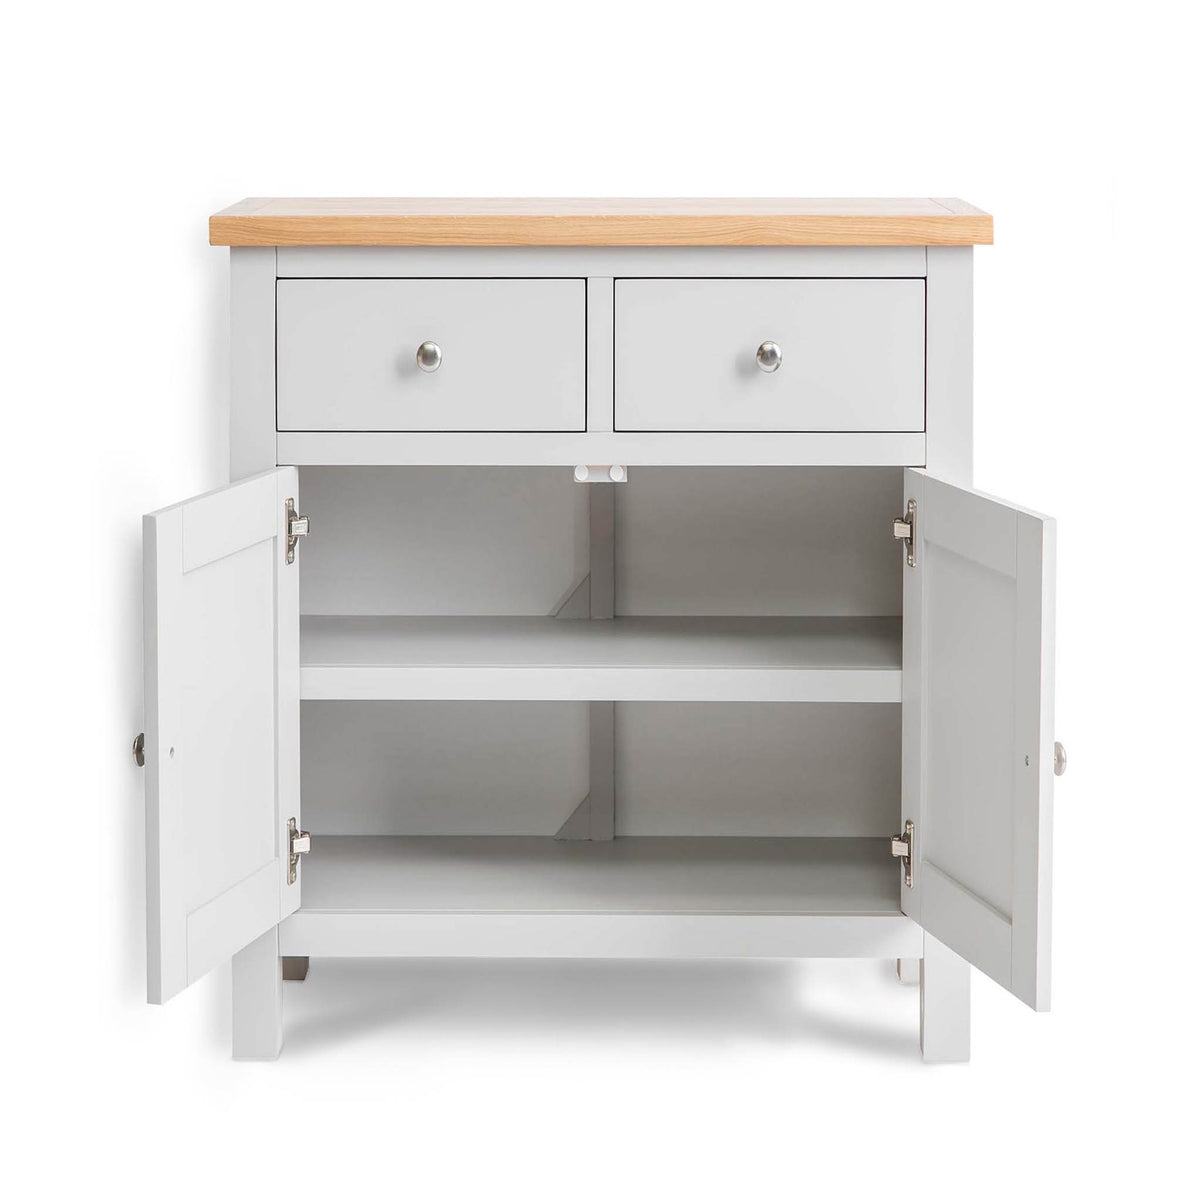 Farrow Grey Mini Sideboard - Front view with cupboard doors open